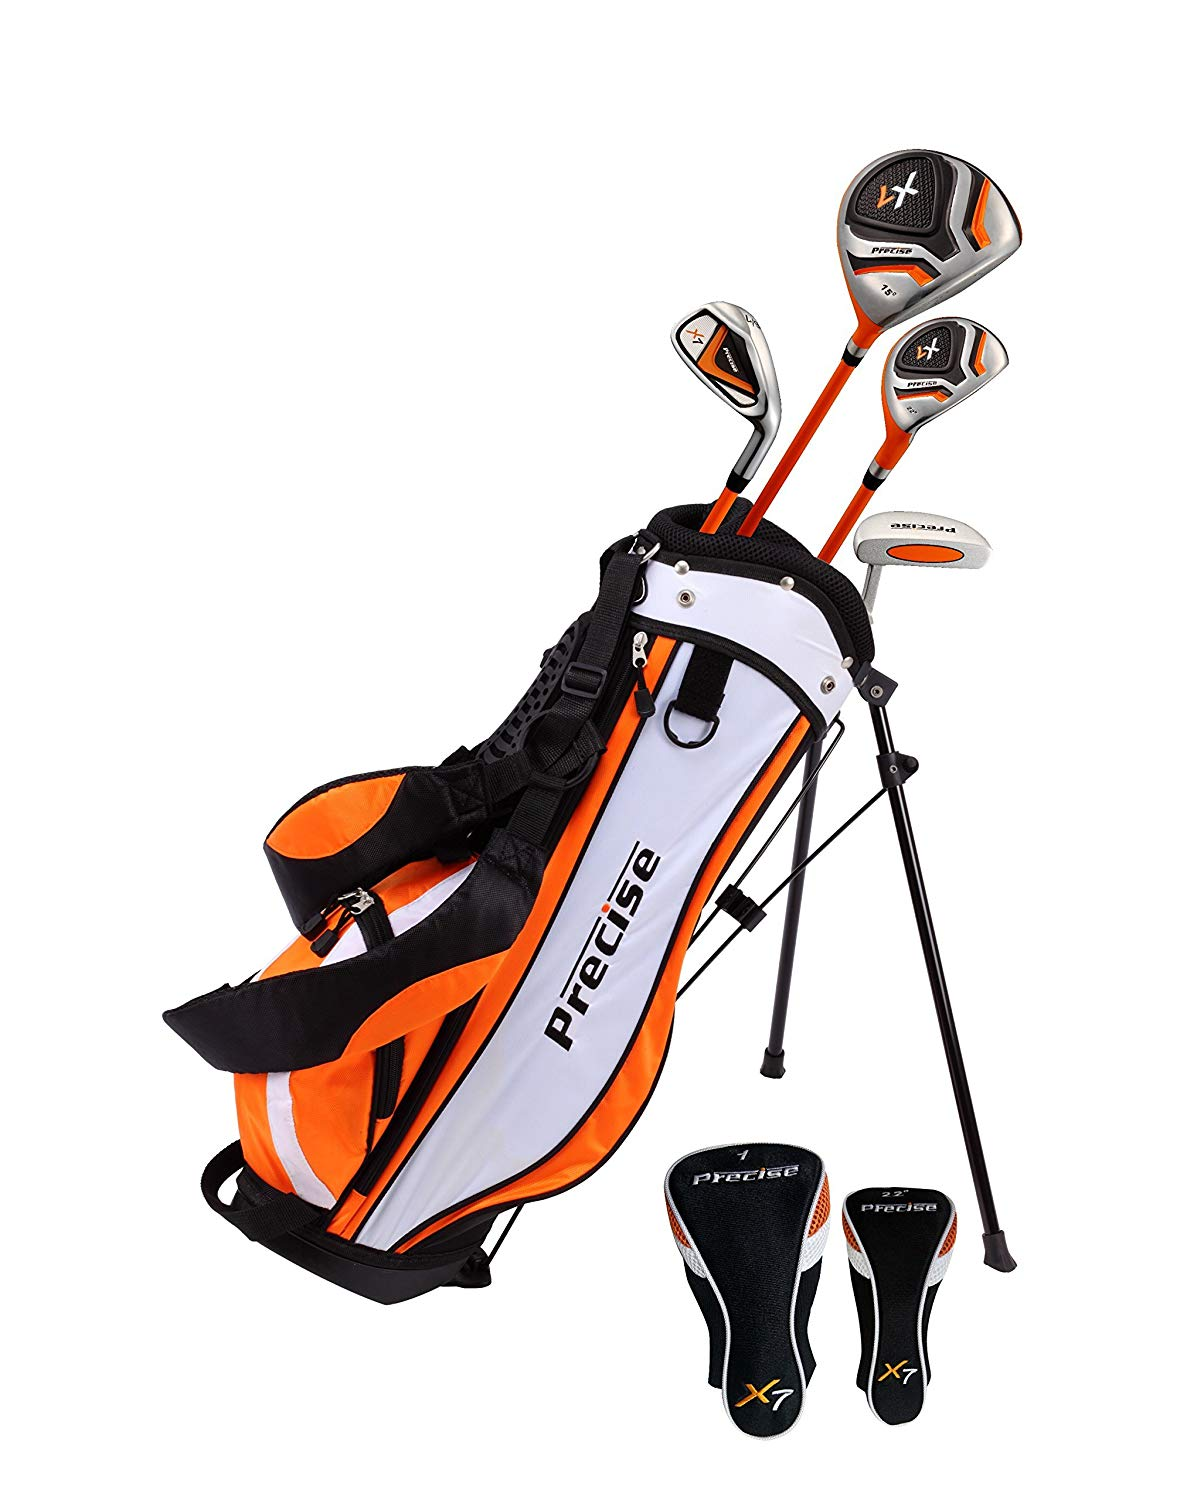 Precise X7 junior golf clubs for ages 3-12